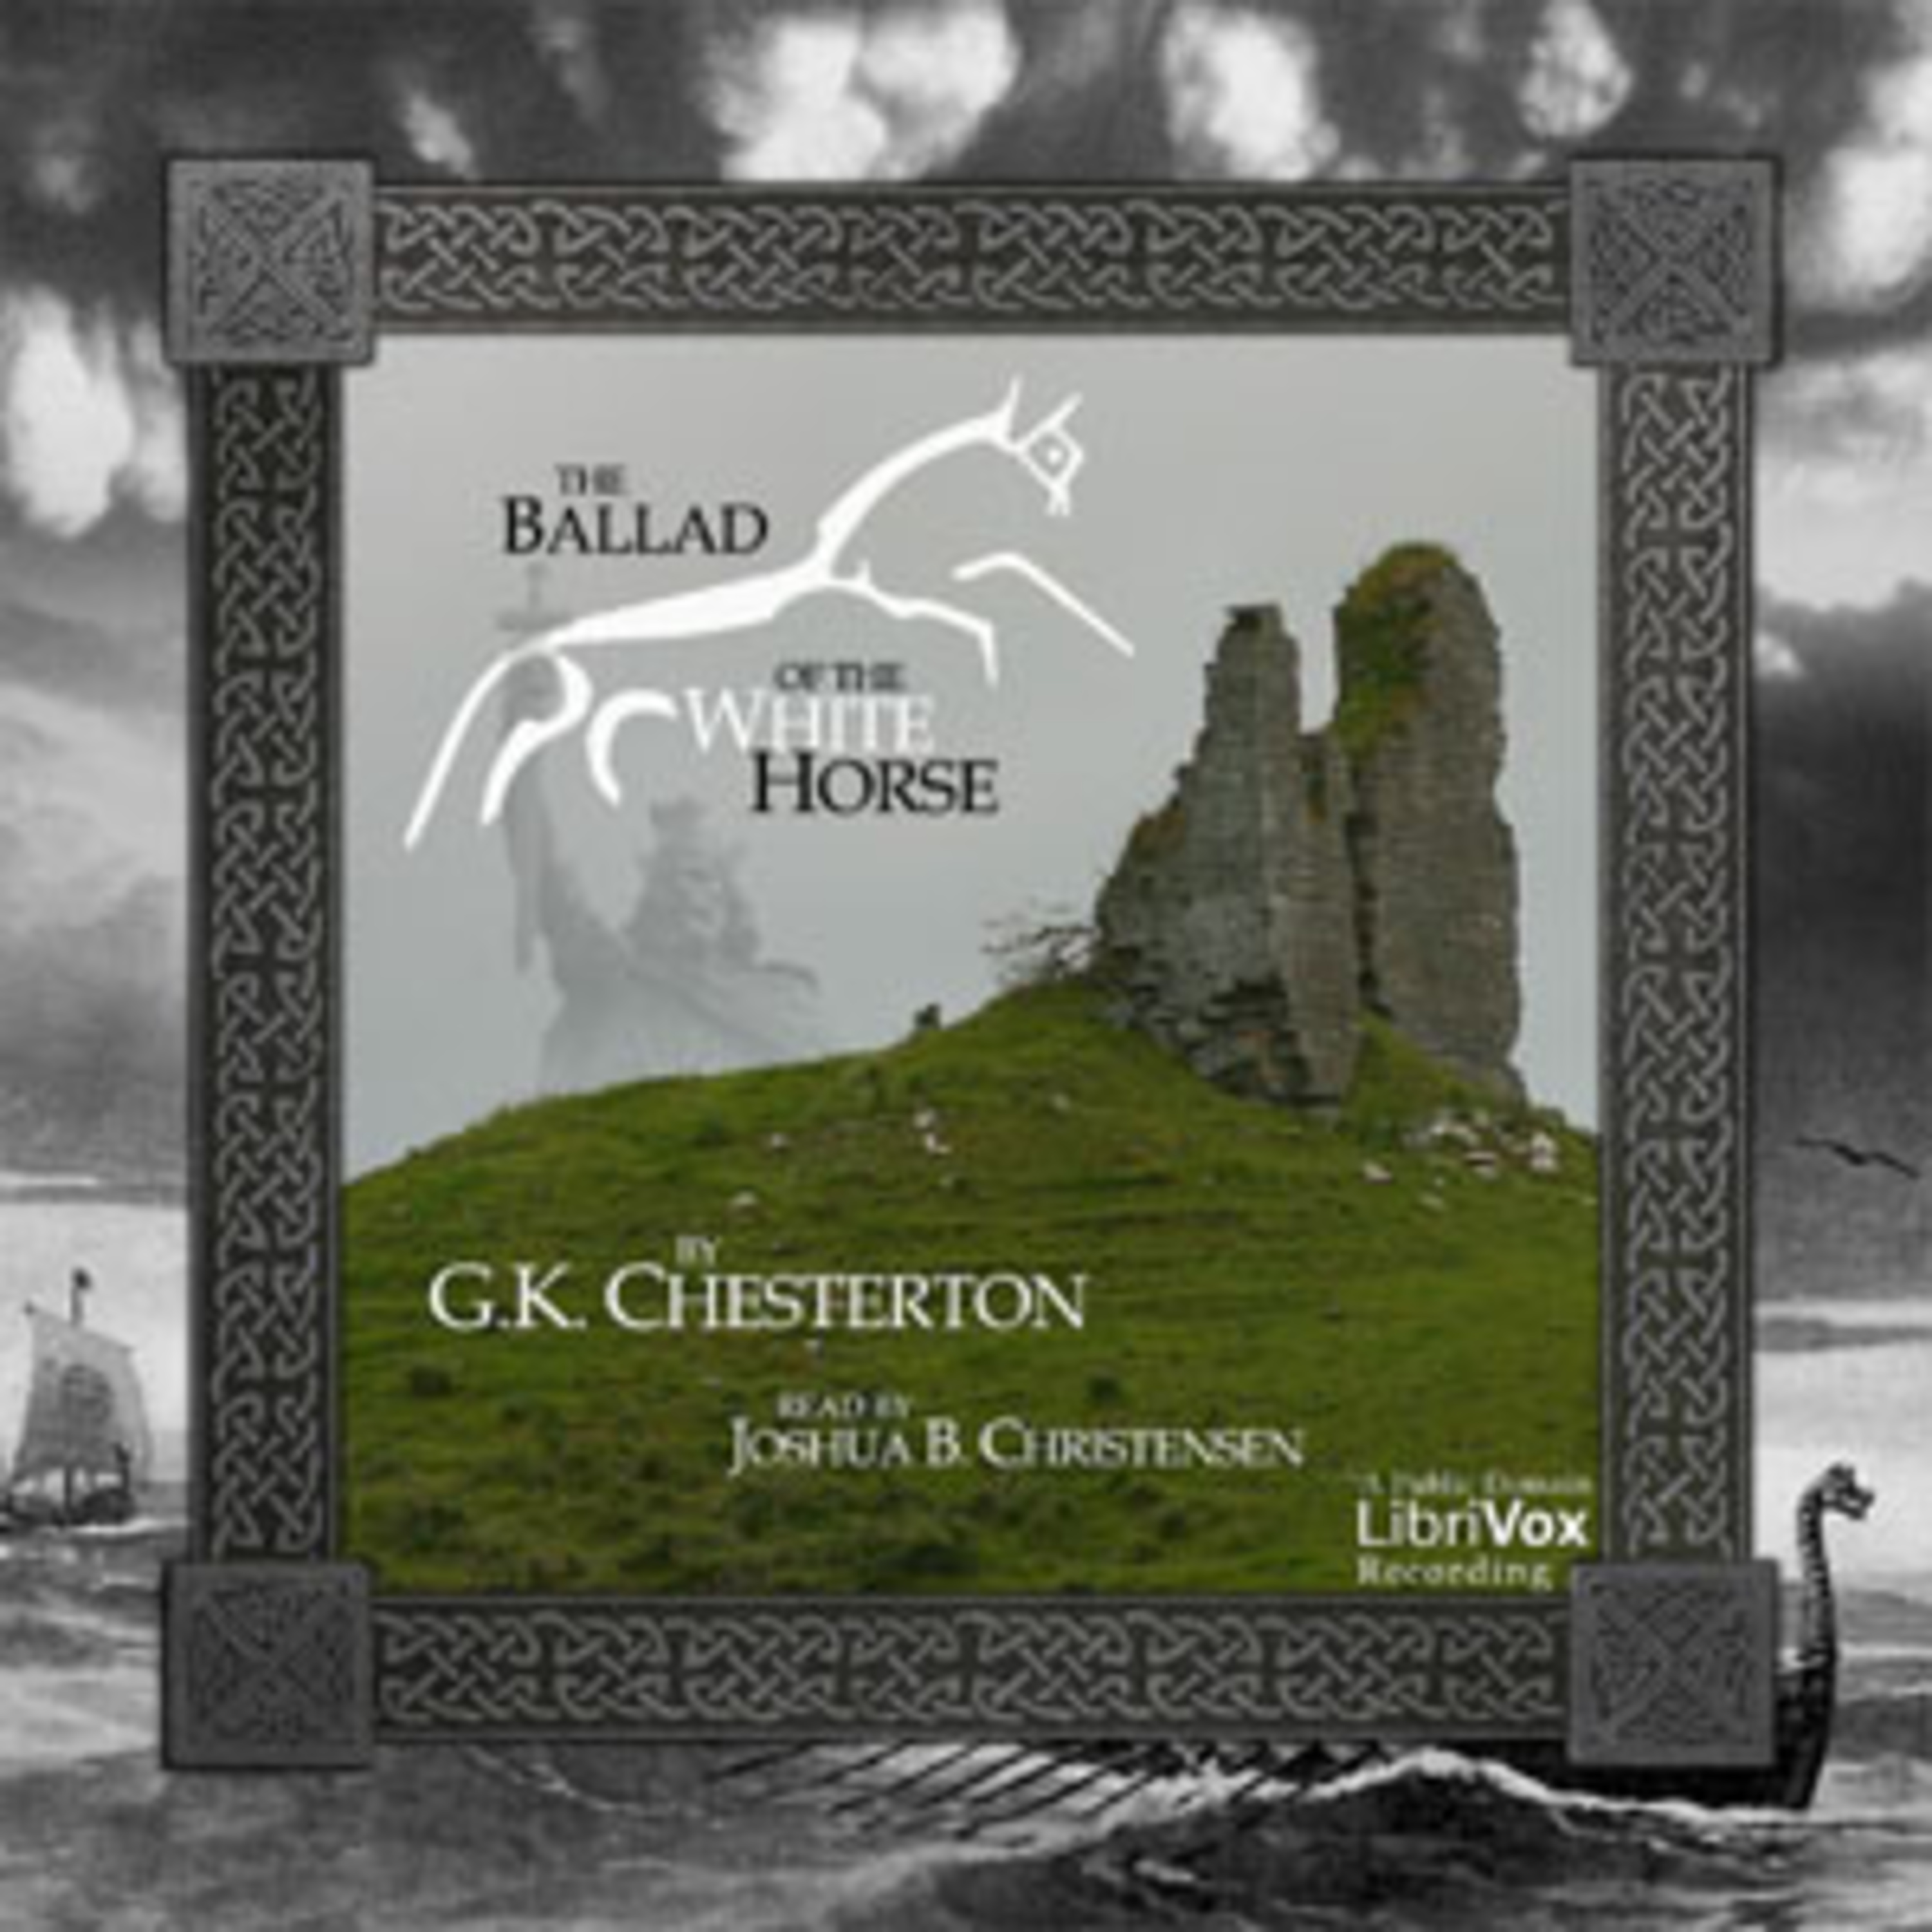 The Ballad of the White Horse - Epic Poem by G.K.Chesterton - Follows Exploits of Alfred the Great in defense of Christian civilization from heathen nihilism